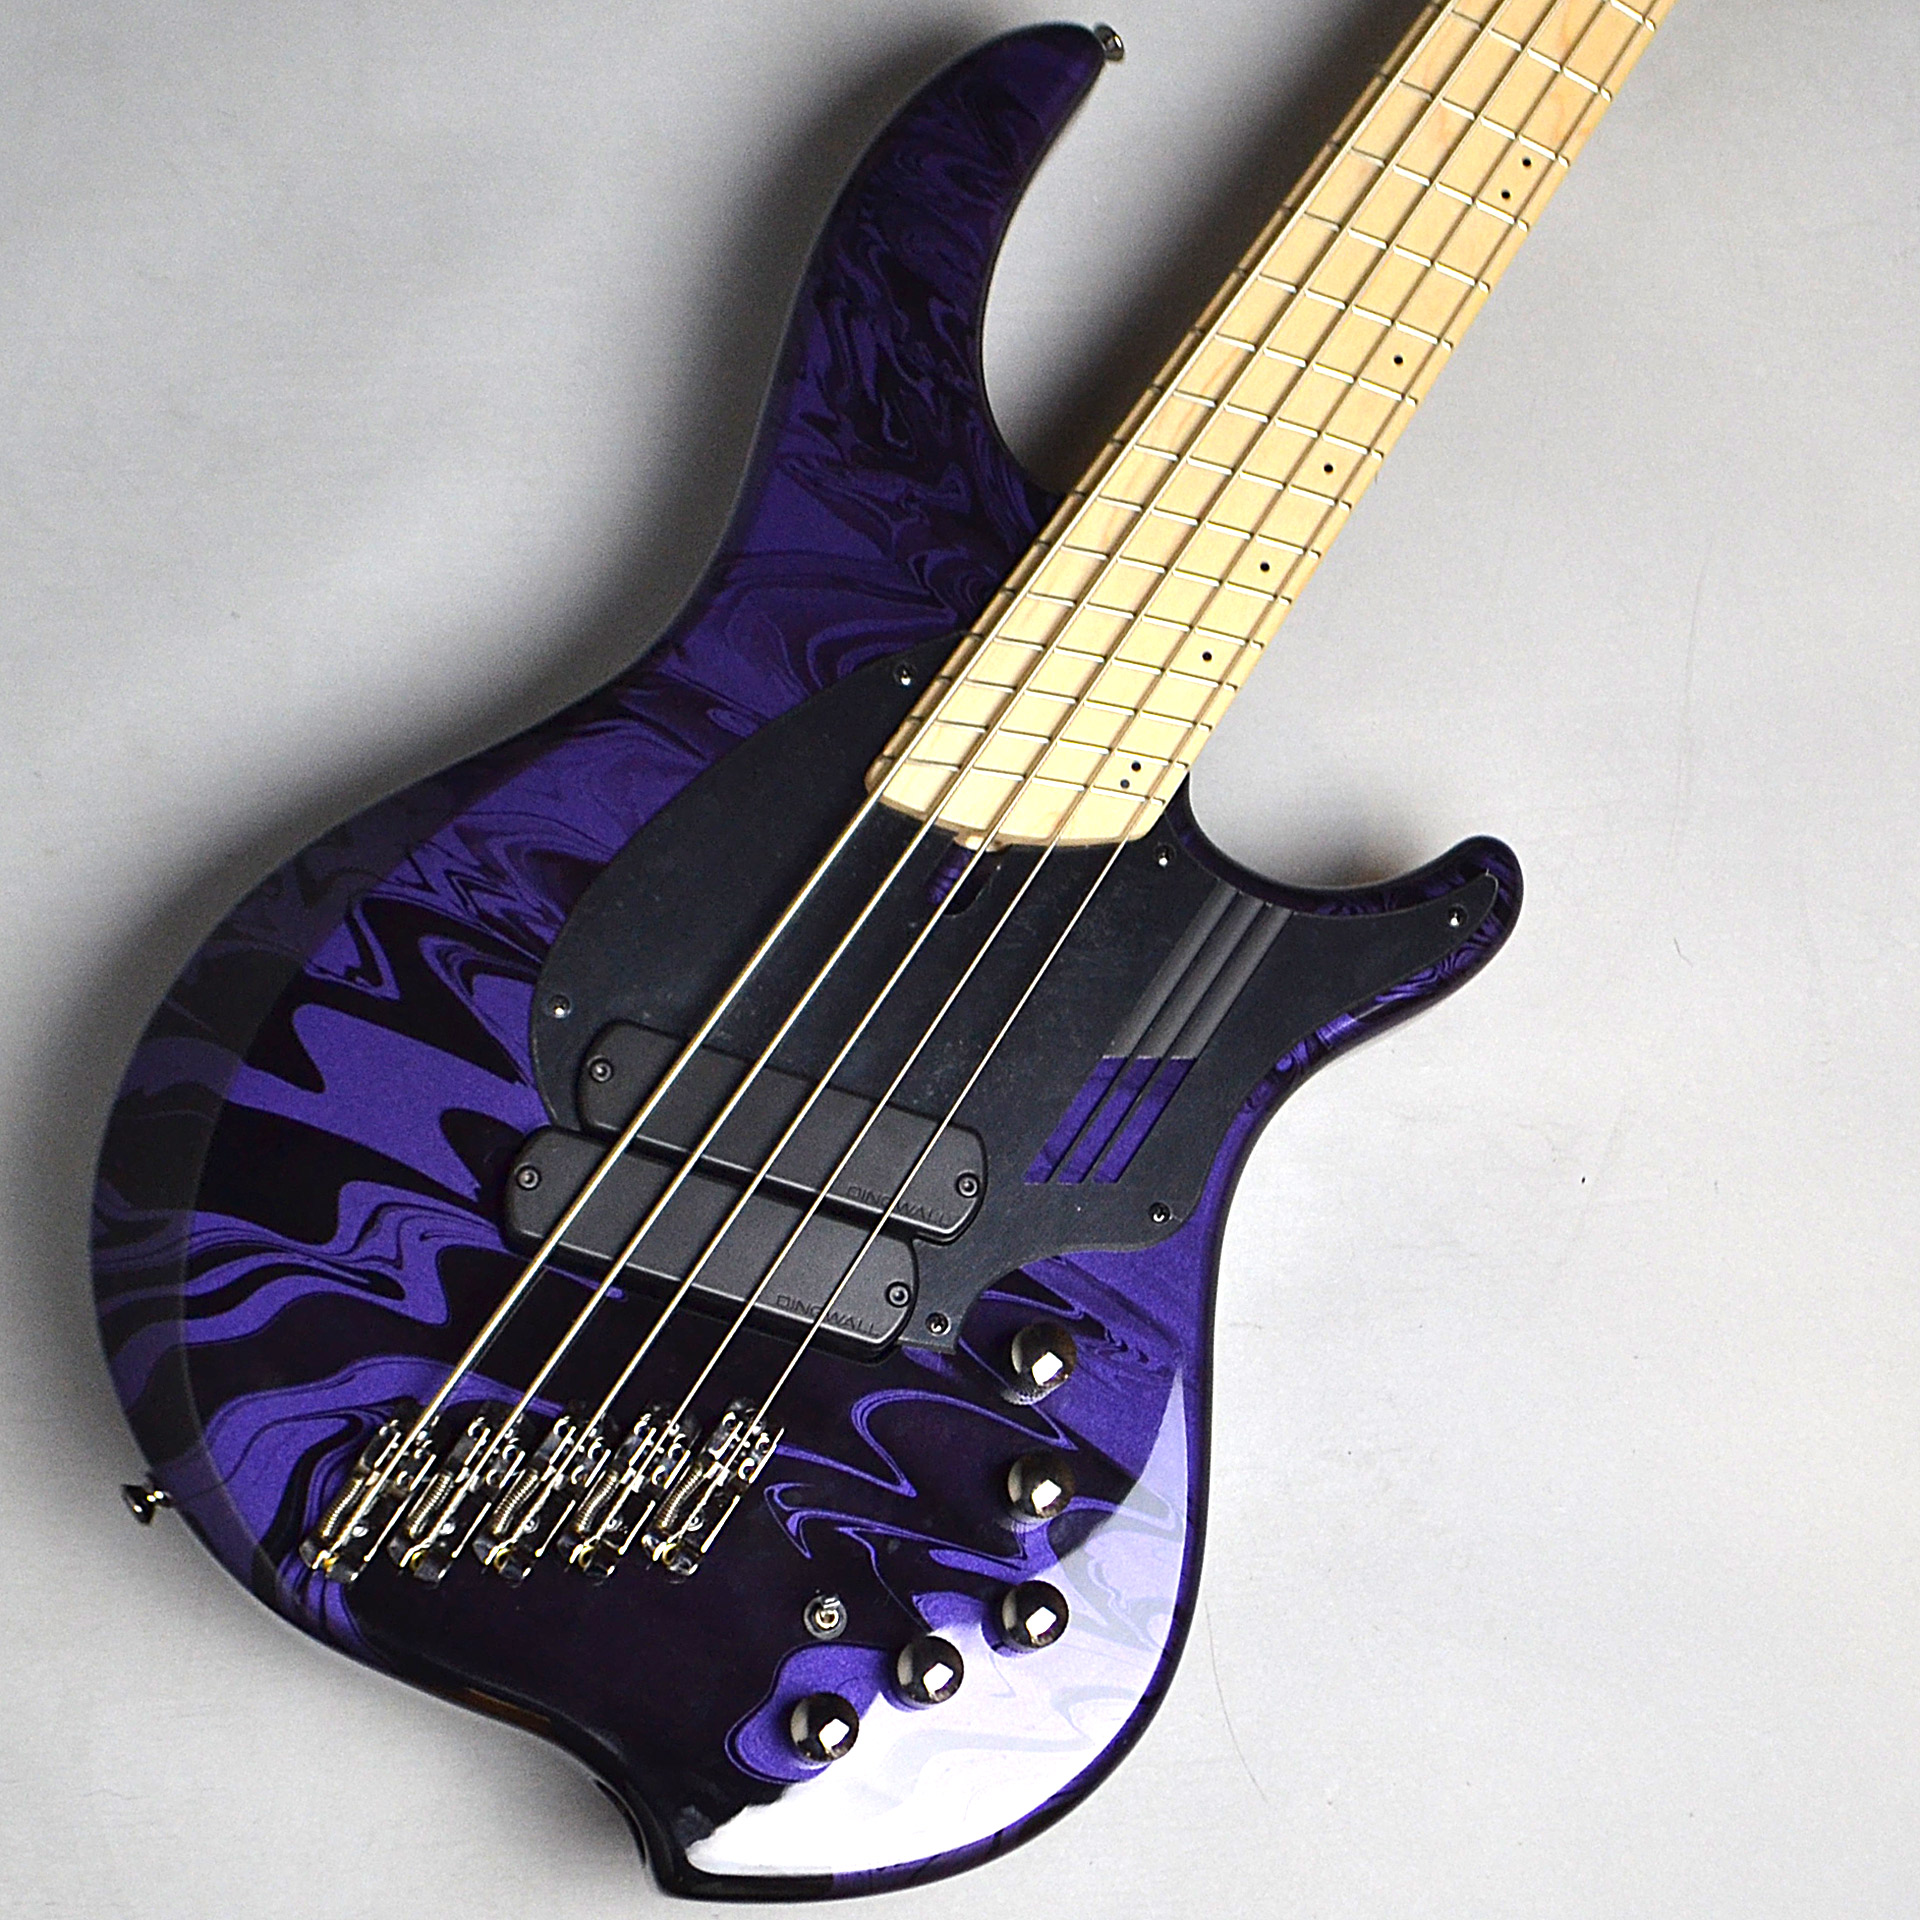 NG-2 5st Adam Nolly Getgood Signature Modelの全体画像